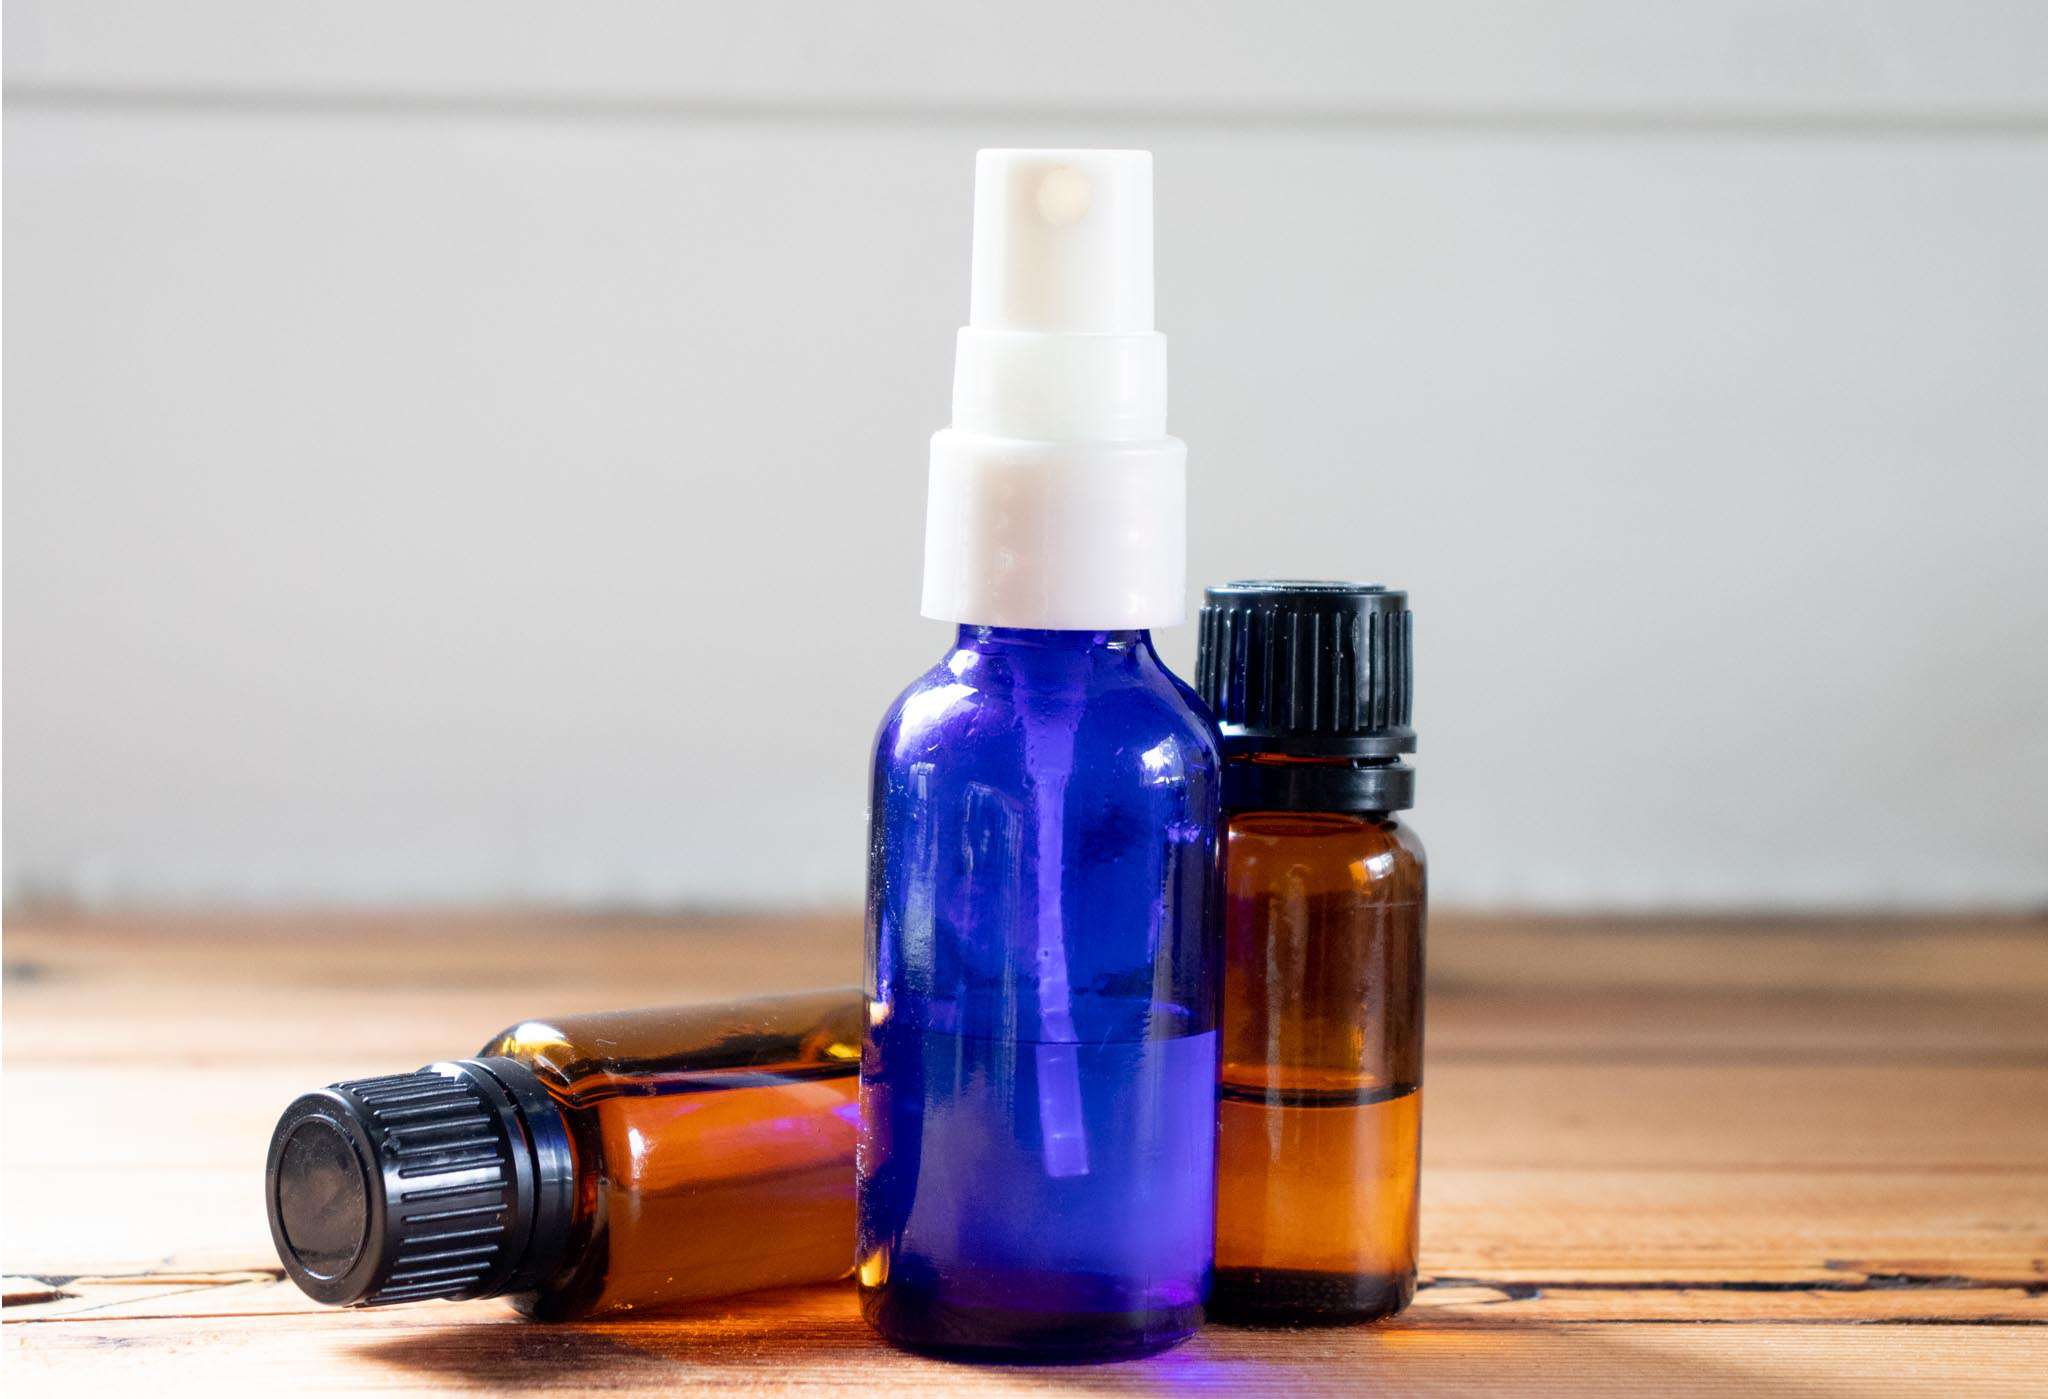 essential oils and rubbing alcohol in refillable bottles